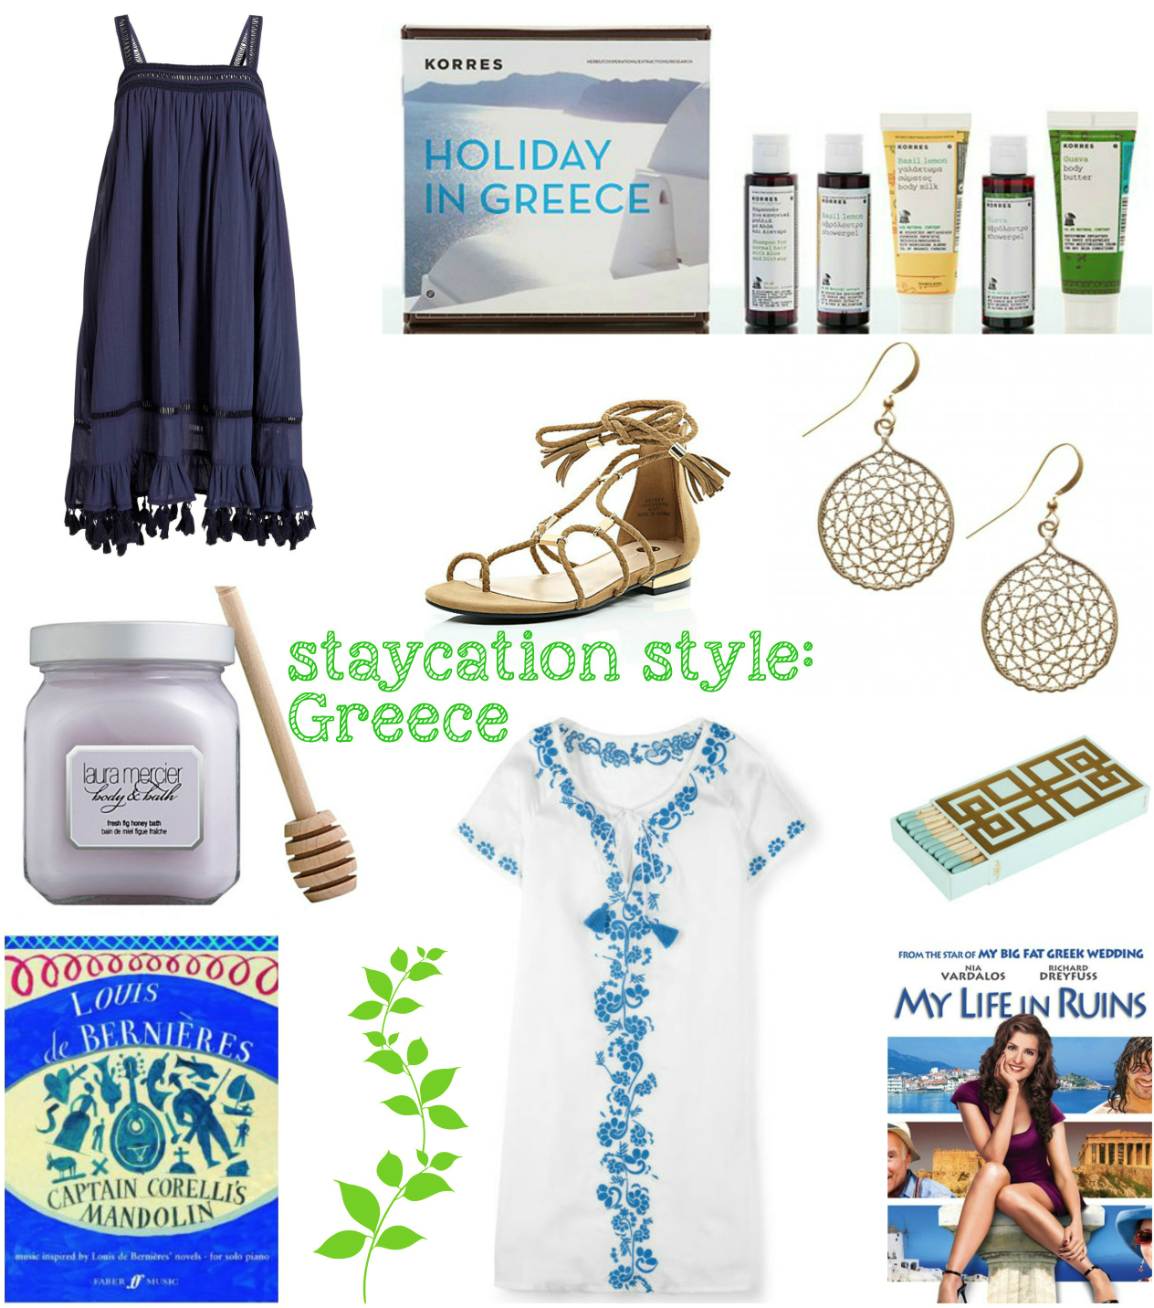 mamasVIB | V. I. BABYMAMAS: How to take a stylish holiday …at HOME! Part 1 | next | greece | greek holiday | holiday in greece | korres | river island | gladiators sandals | amaara | my life in ruins | oliver bon as | greek key matches | mesh earring s| greece | greek isles | louis de bernieres | captain corelli | holiday style | satiation | holiday fashion | style | style | mamasvib | greek looks | holiday | kaftan | smock dress | boden | corscia kaftan | greece islands